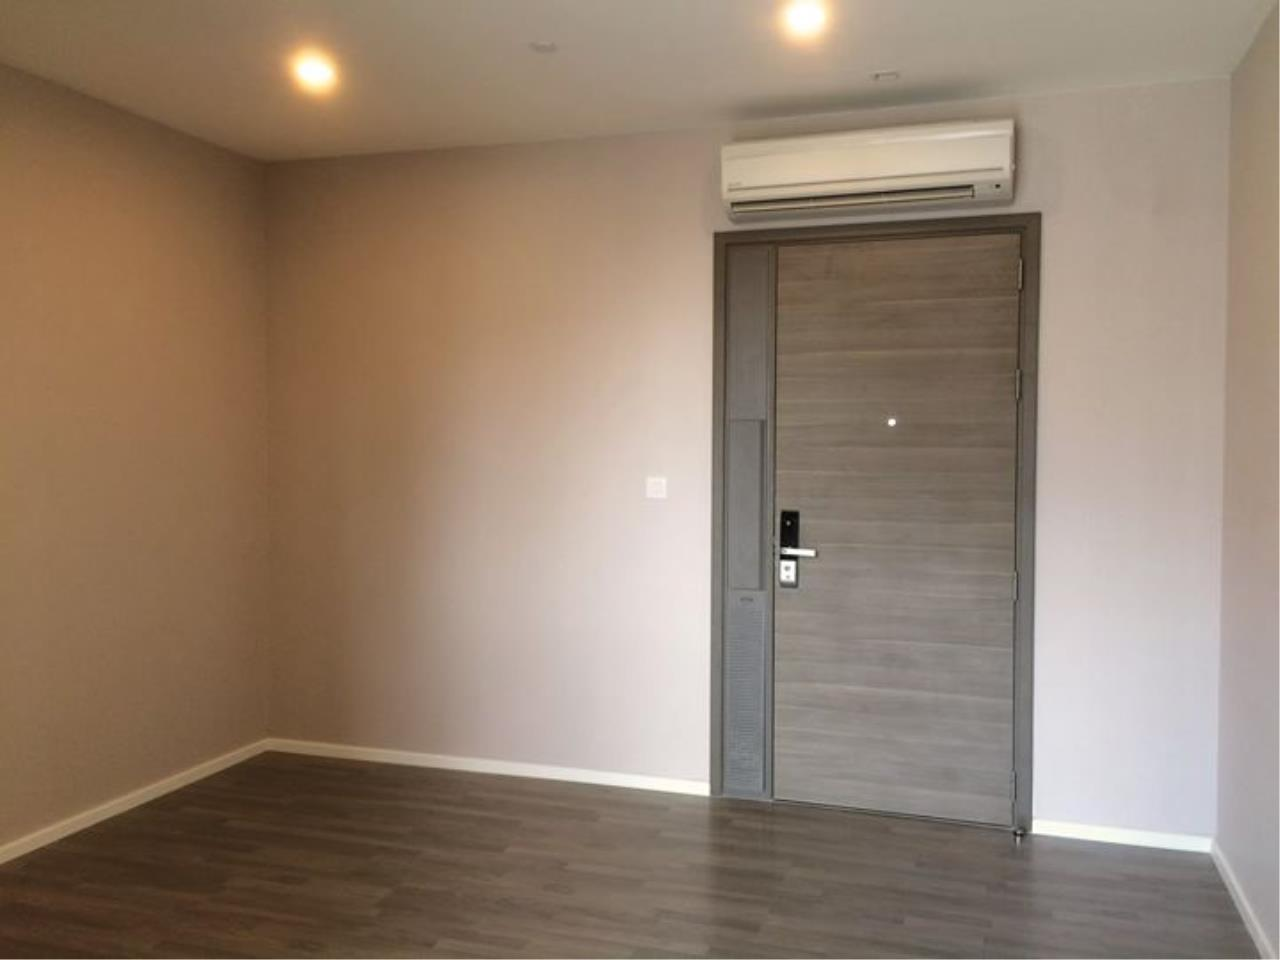 Century21 Skylux Agency's The Room Sukhumvit 69 / Condo For Sale / 1 Bedroom / 44.91 SQM / BTS Phra Khanong / Bangkok 6